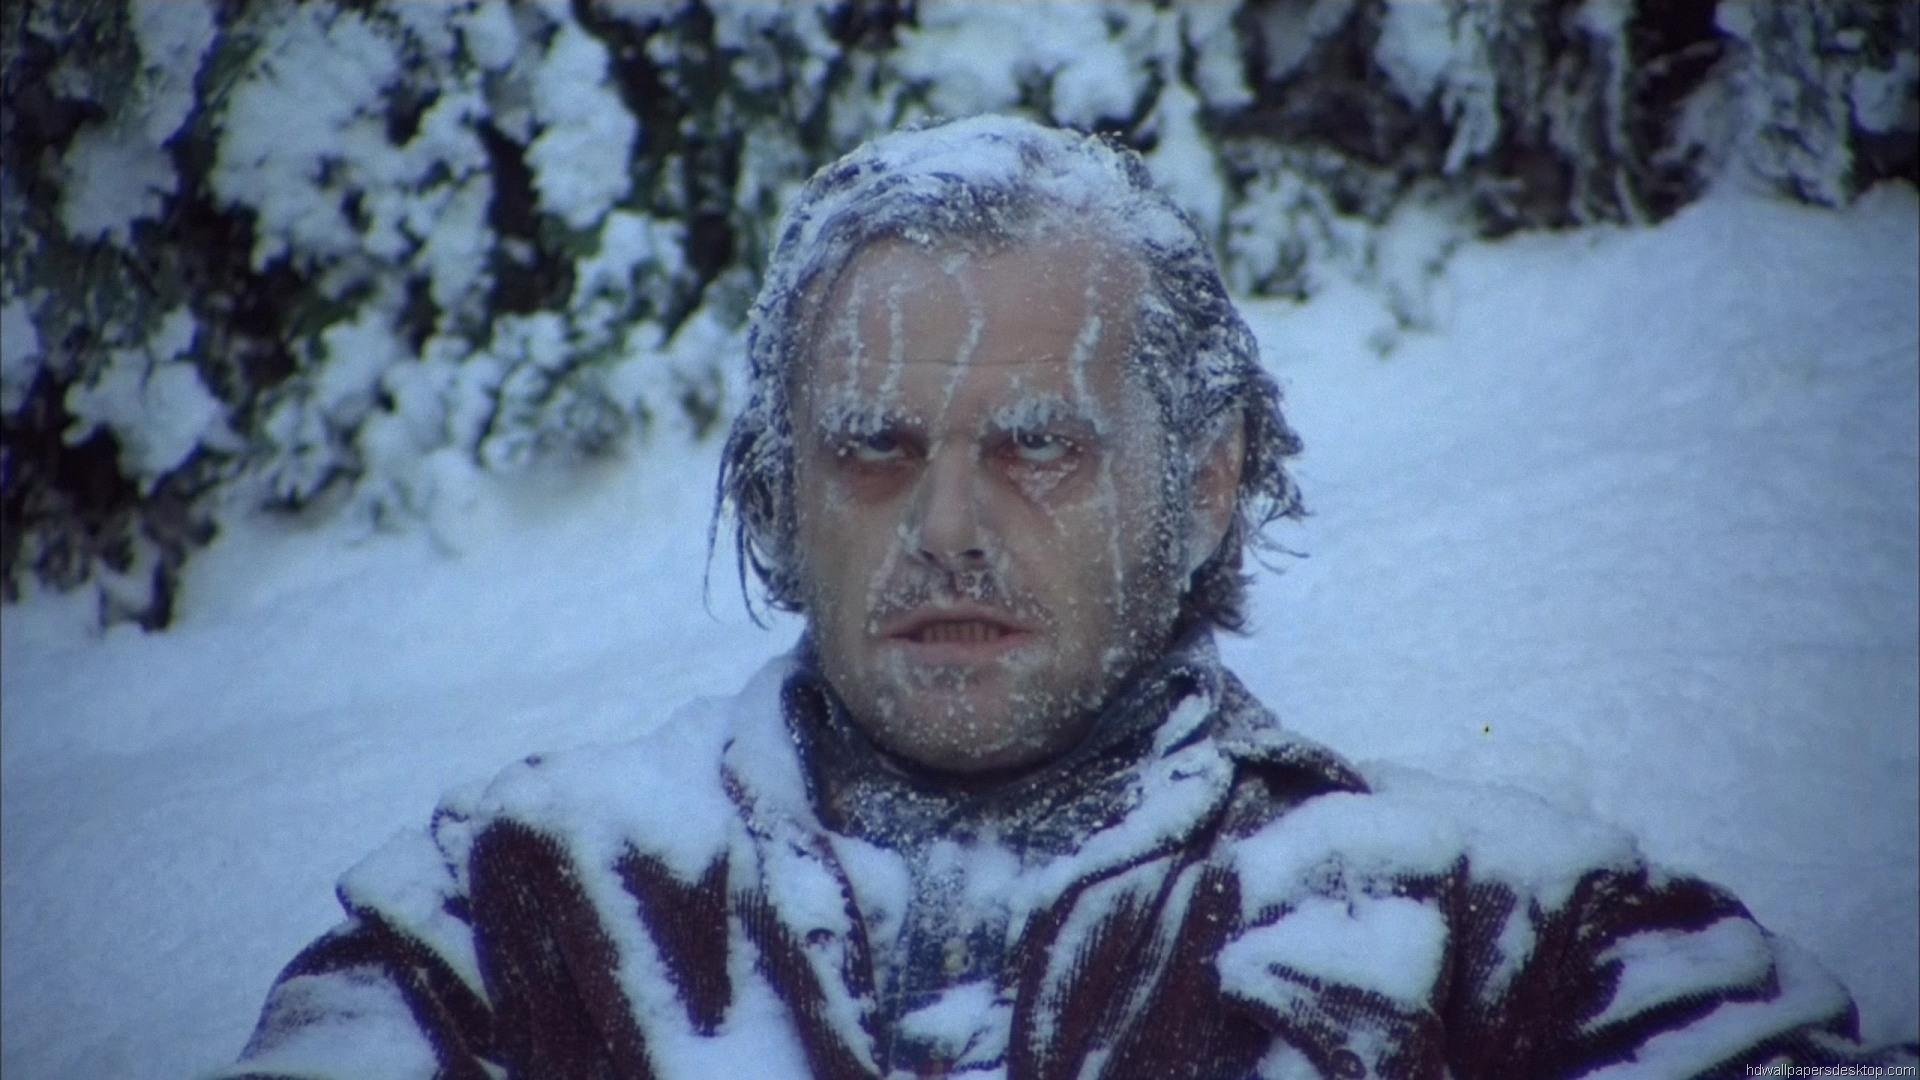 http://www.film.ru/sites/default/files/movies/frames/the-shining-cinnet-23.jpg